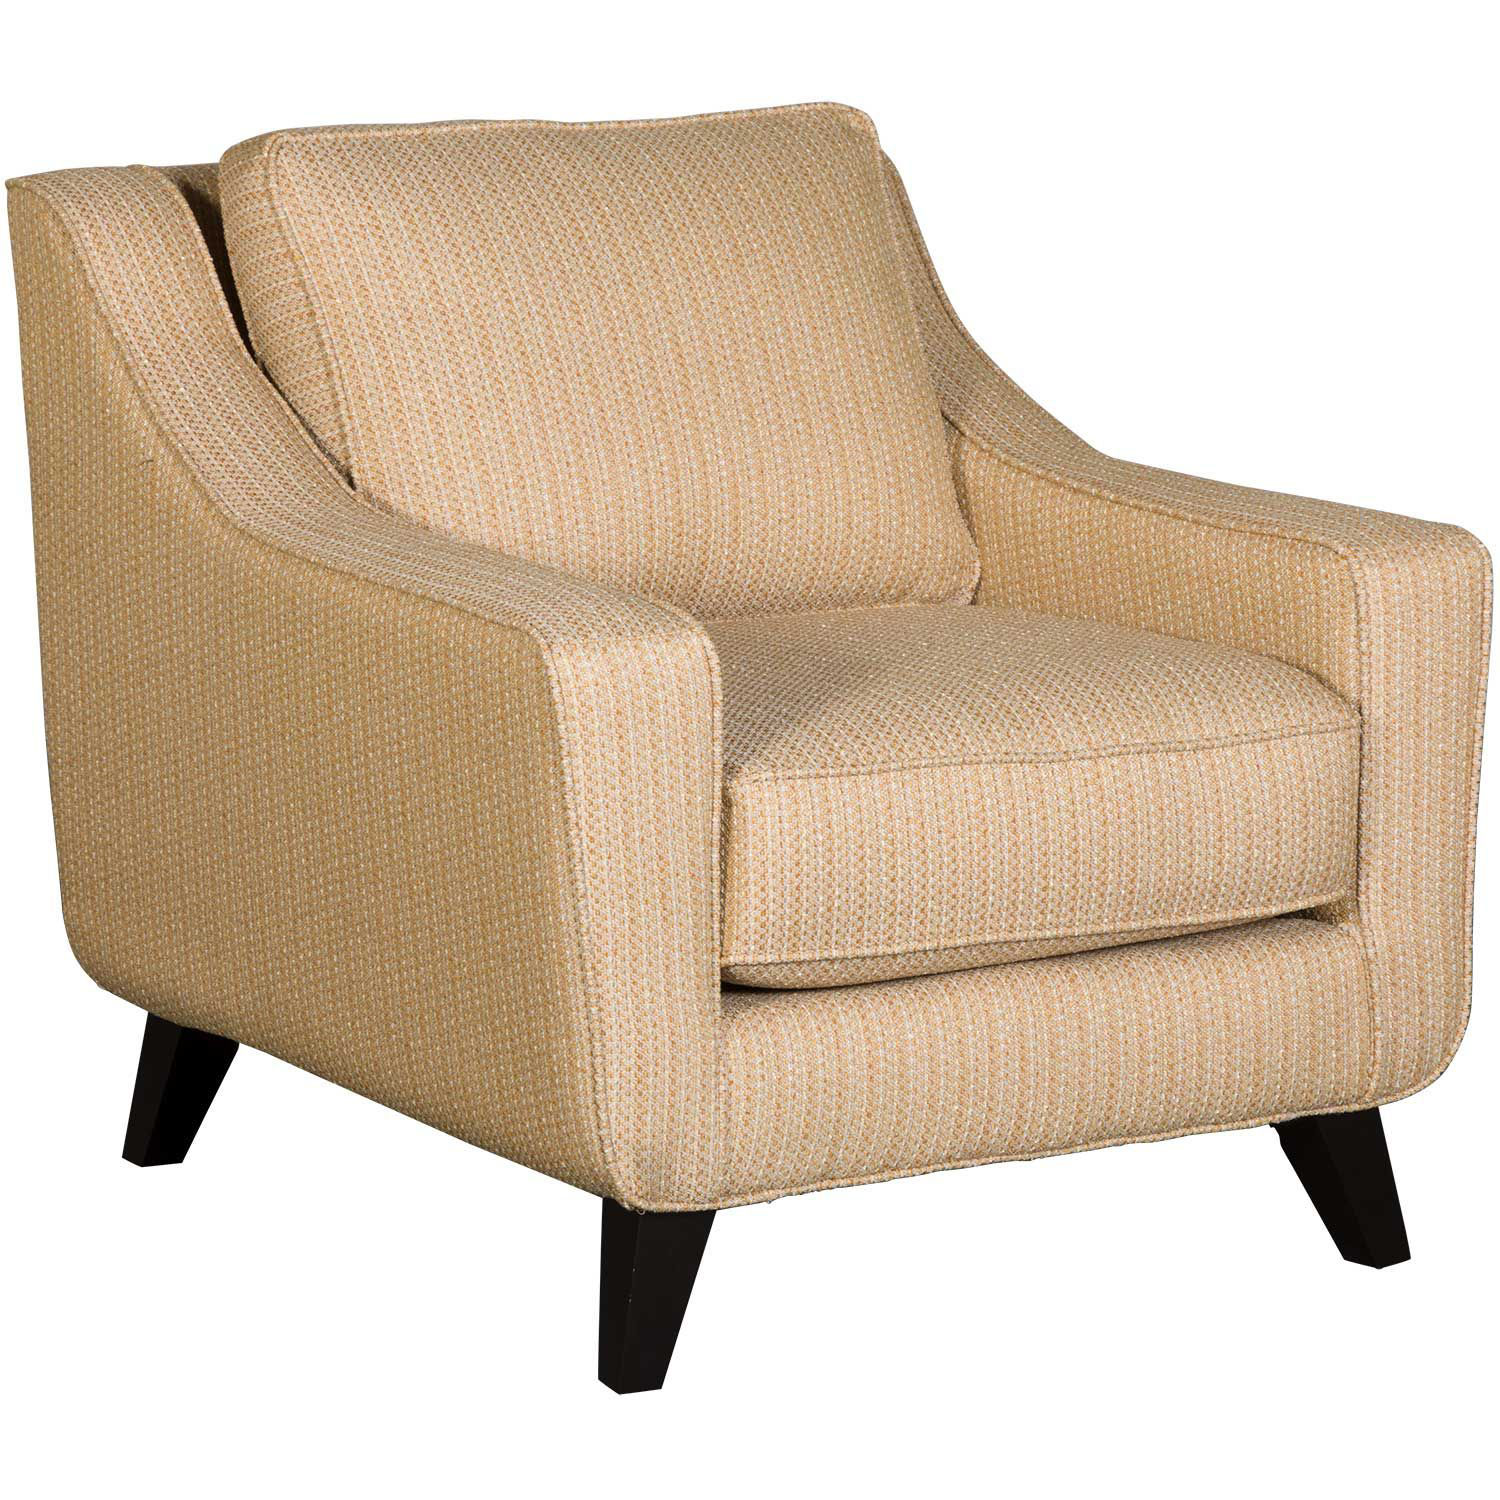 Picture of Kyra Seaglass Accent Chair